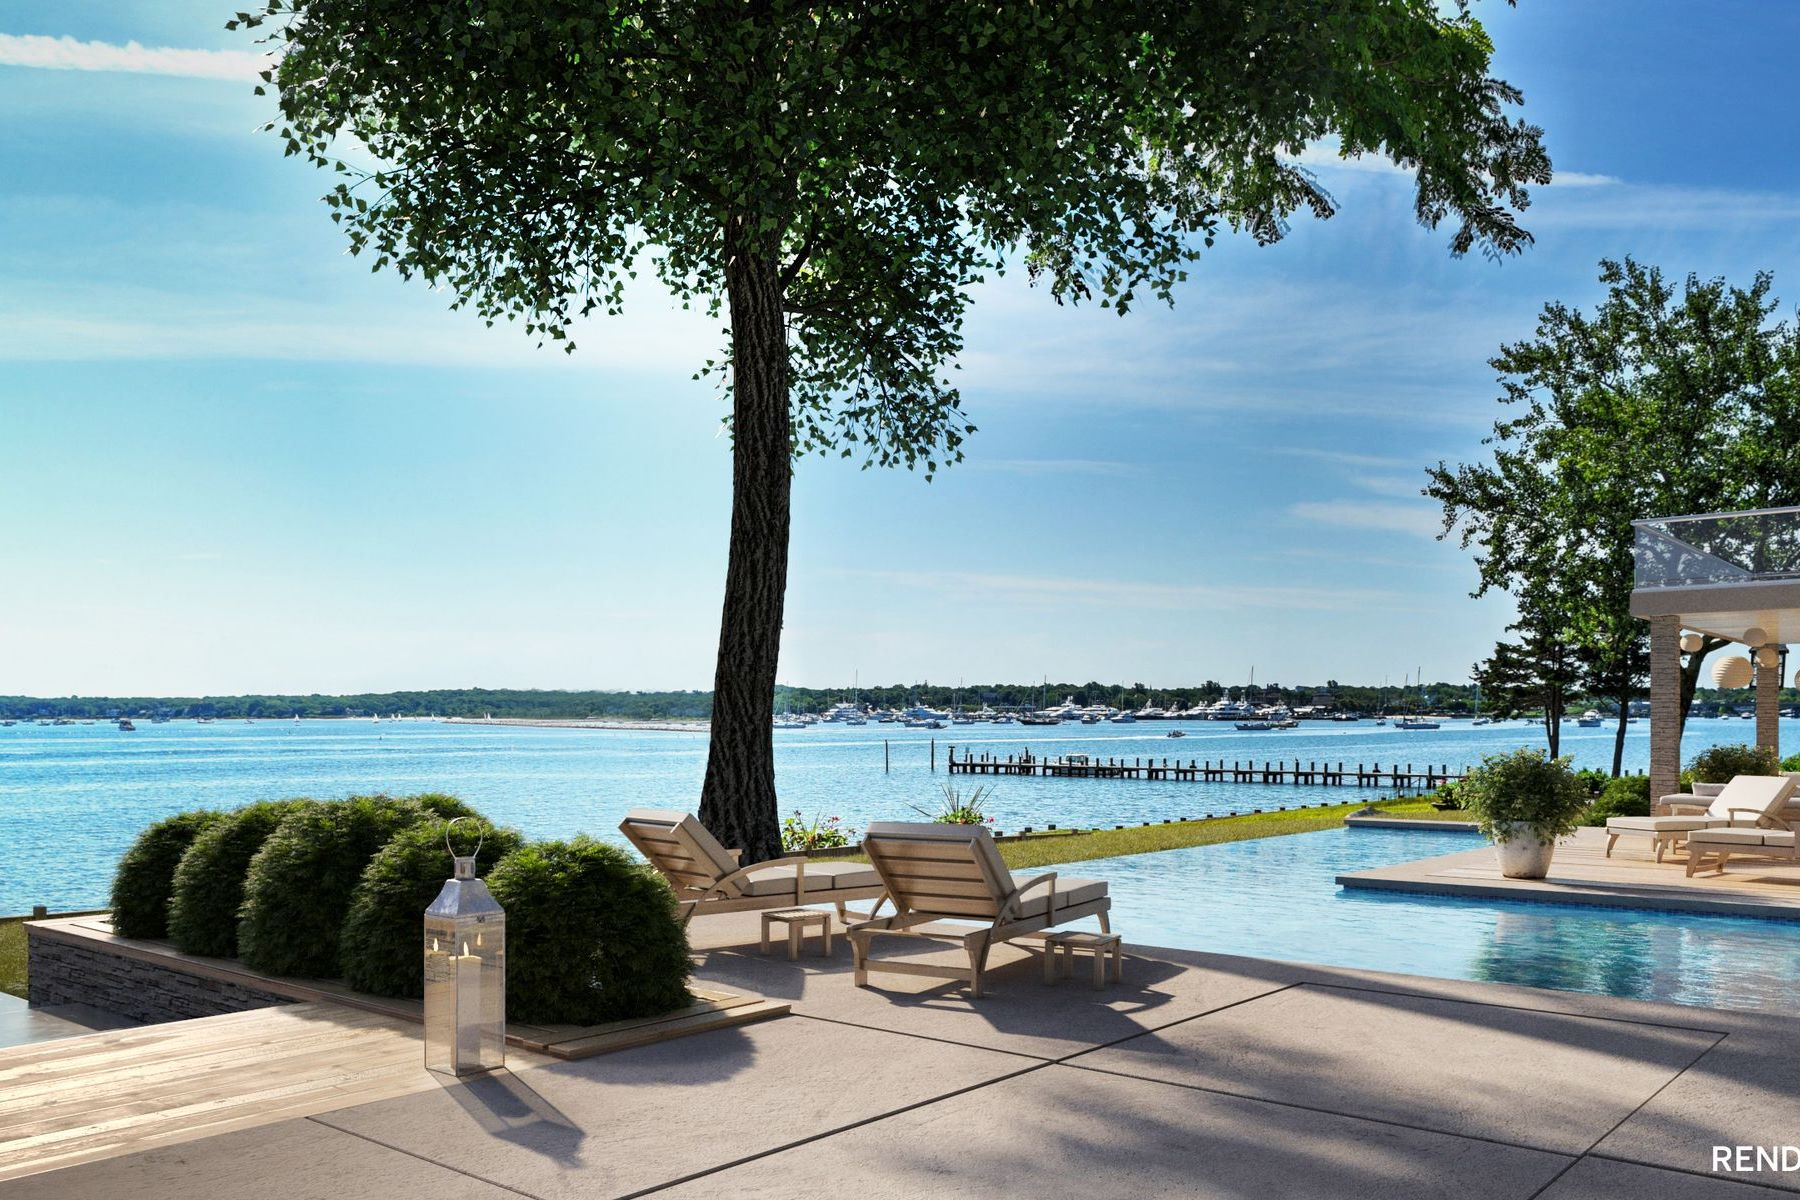 Single Family Homes for Active at Extraordinary Waterfront Dream Property 24 East Harbor Drive Sag Harbor, New York 11963 United States